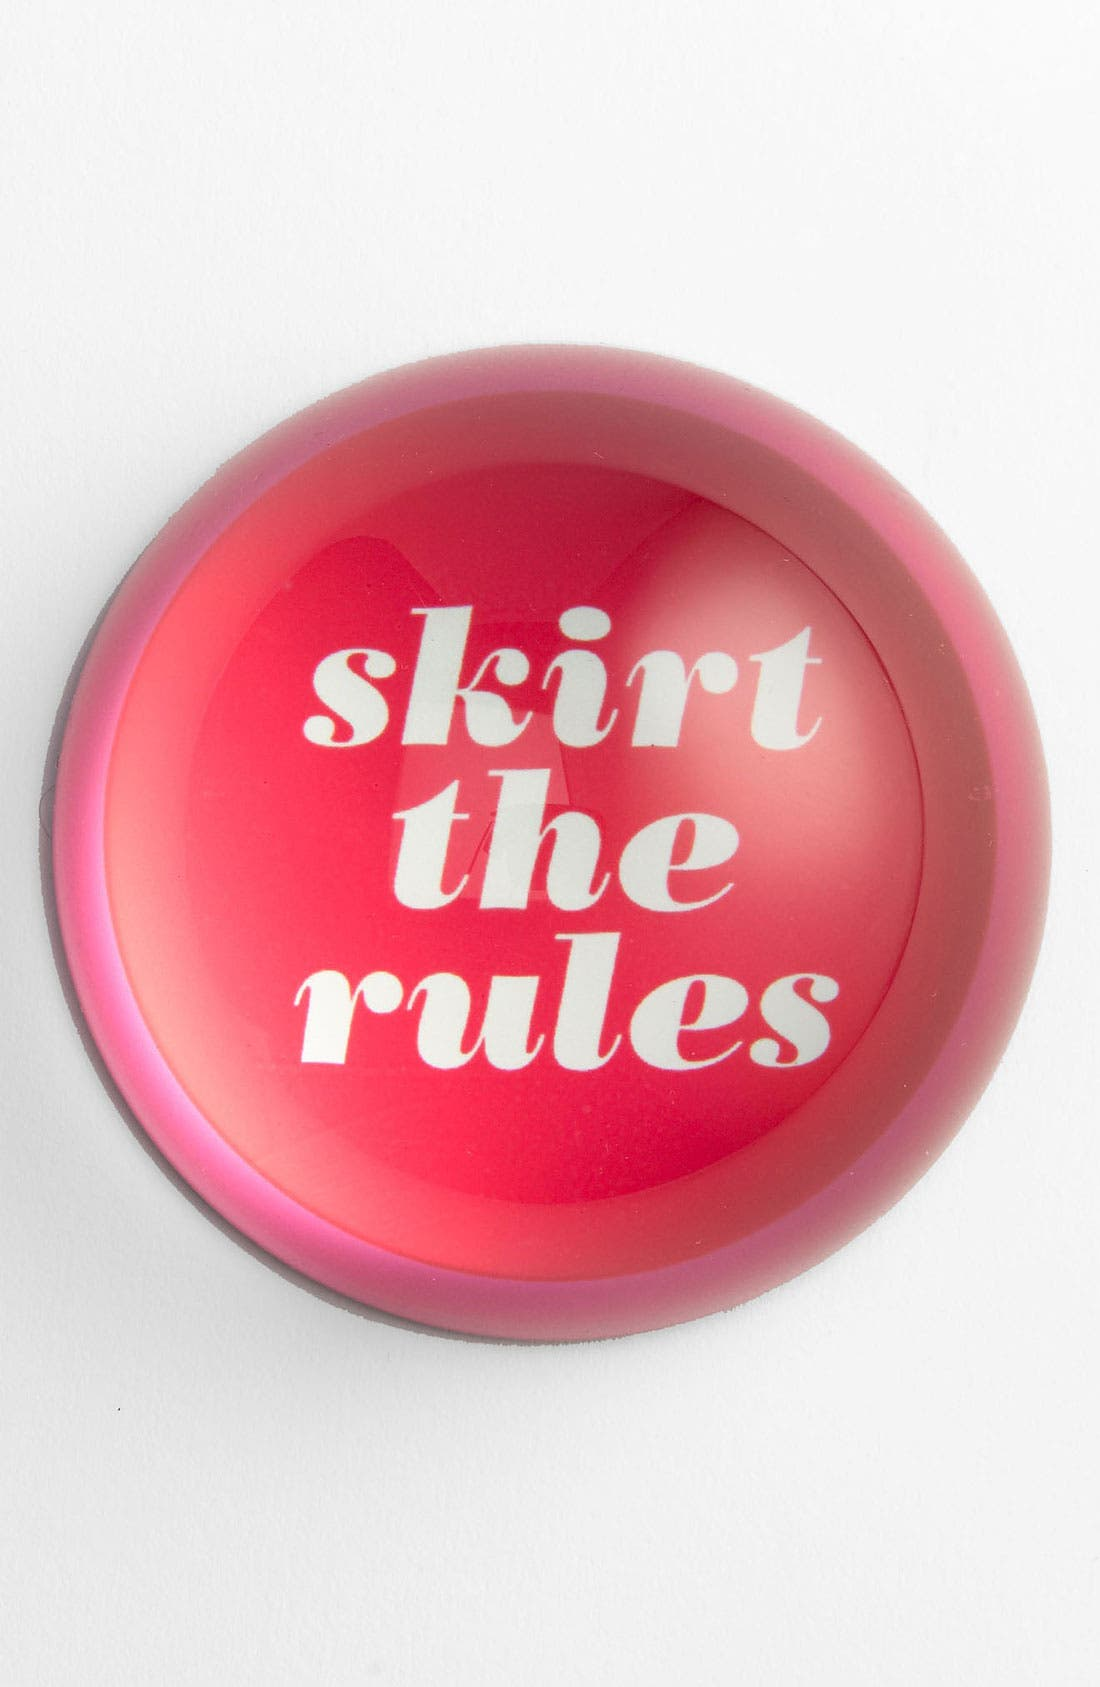 Alternate Image 1 Selected - kate spade new york 'skirt the rules' paperweight